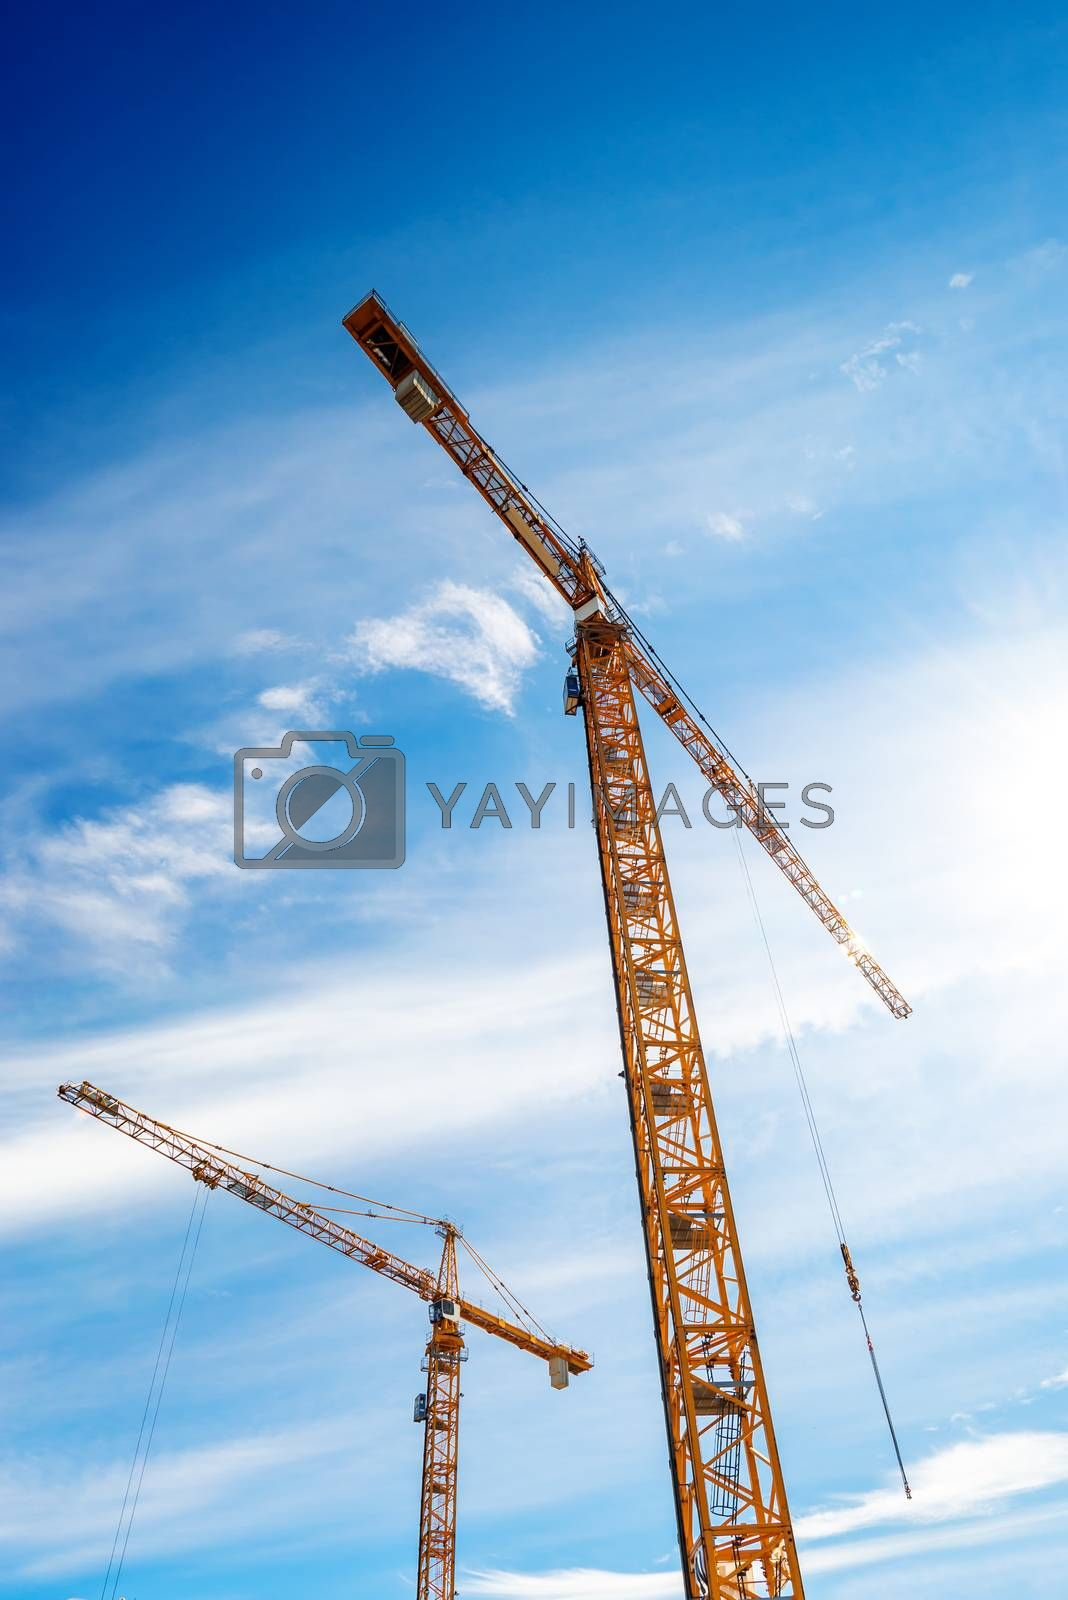 Two Industrial Cranes in Action on Construction Site Against Blue Sky